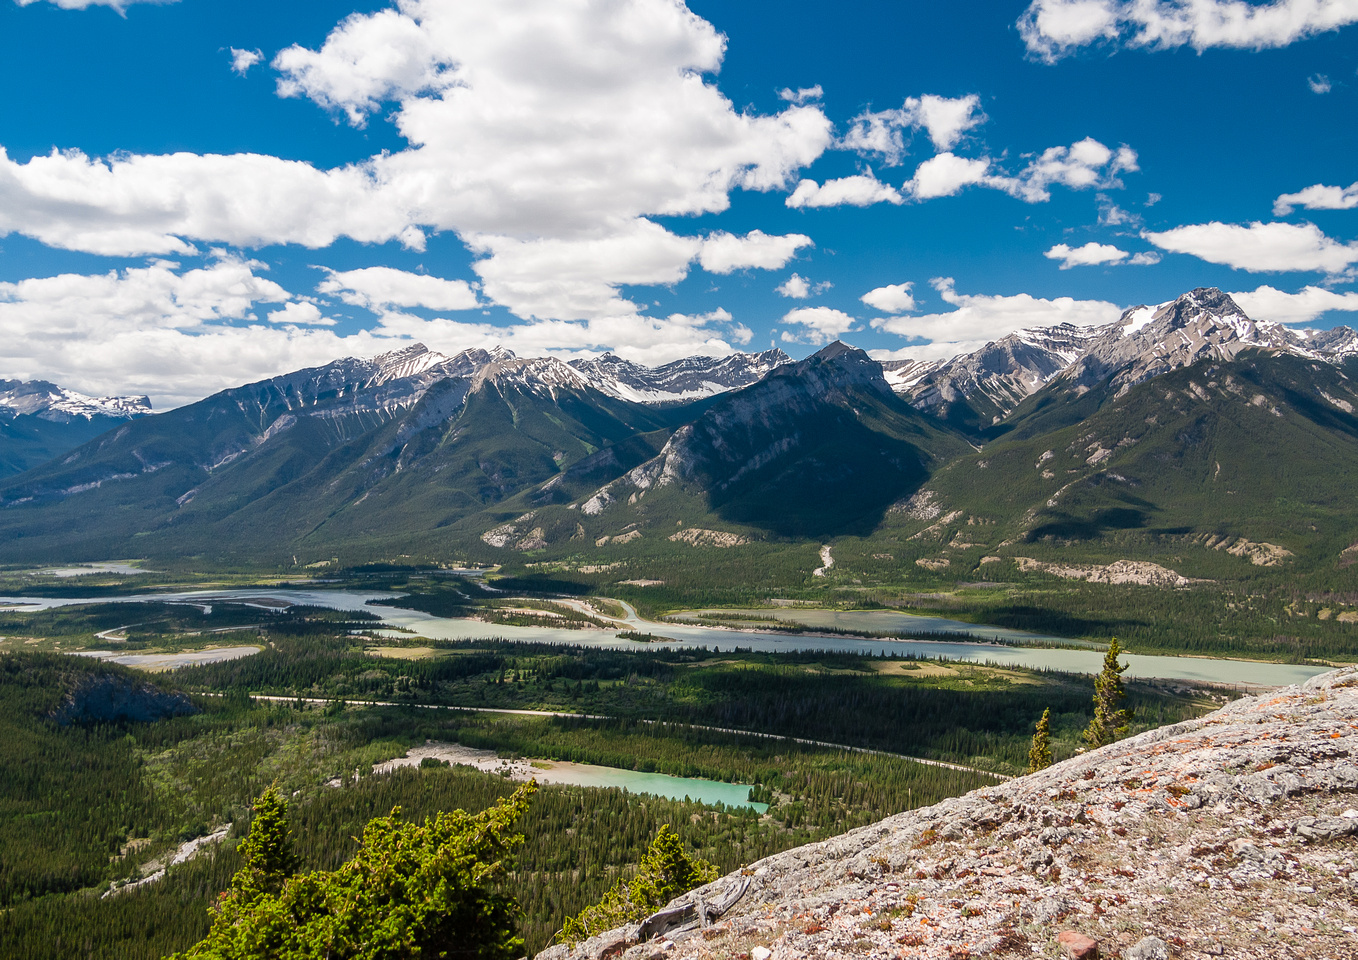 Looking back over Jacques Creek and the Athabasca River.